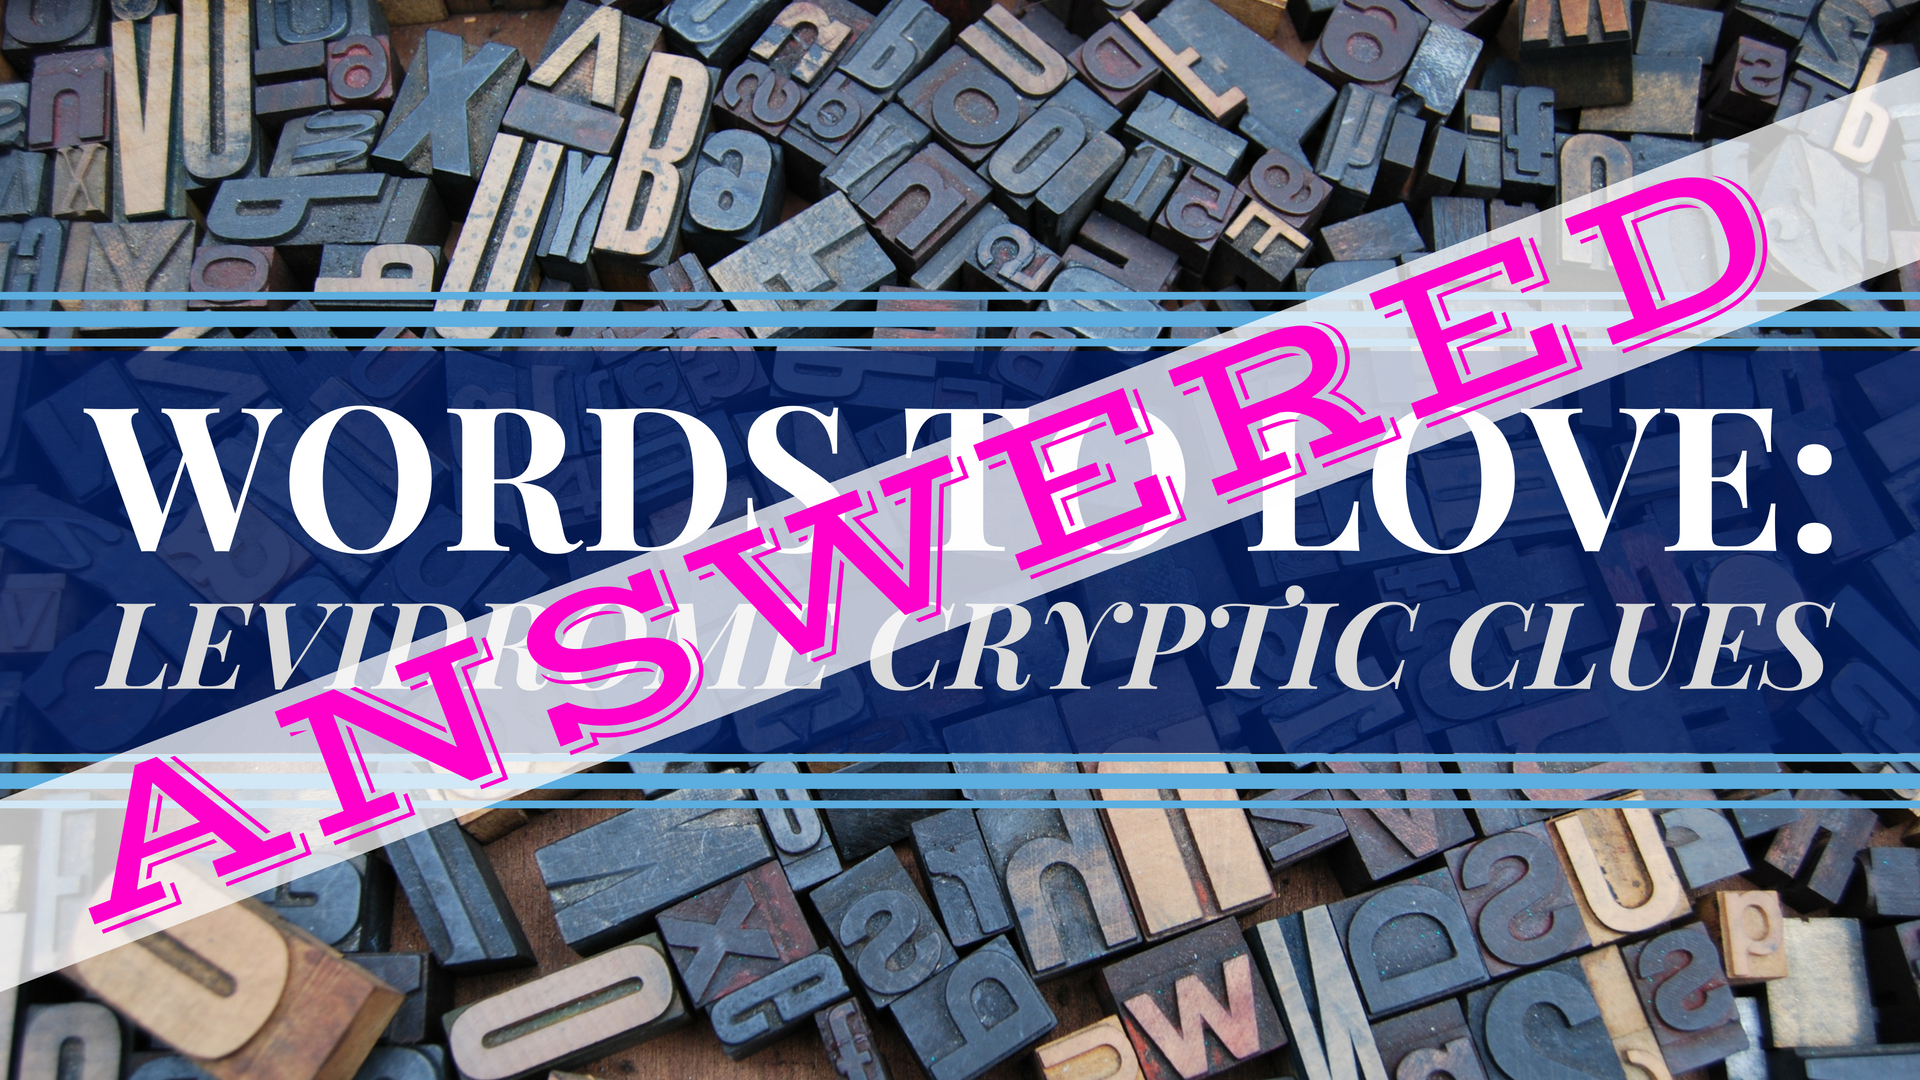 banner-words-to-love-levidrome-cryptic-clues-ANSWERED.jpg